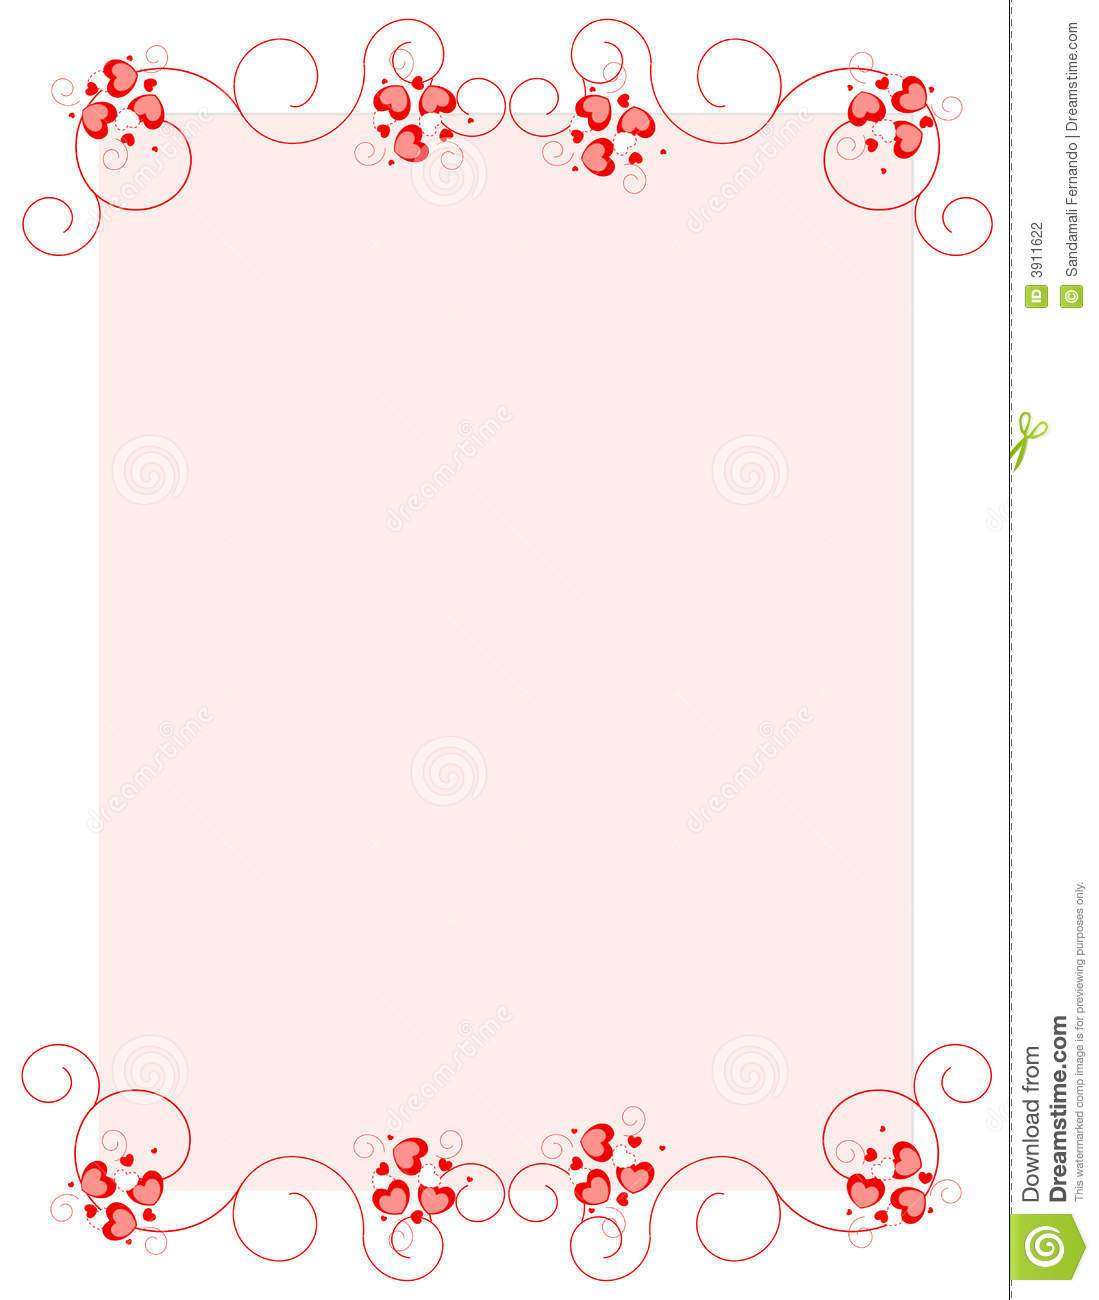 Valentine's Day / Holiday /Love background.. with red hearts.. for ... Flower Vine Clipart